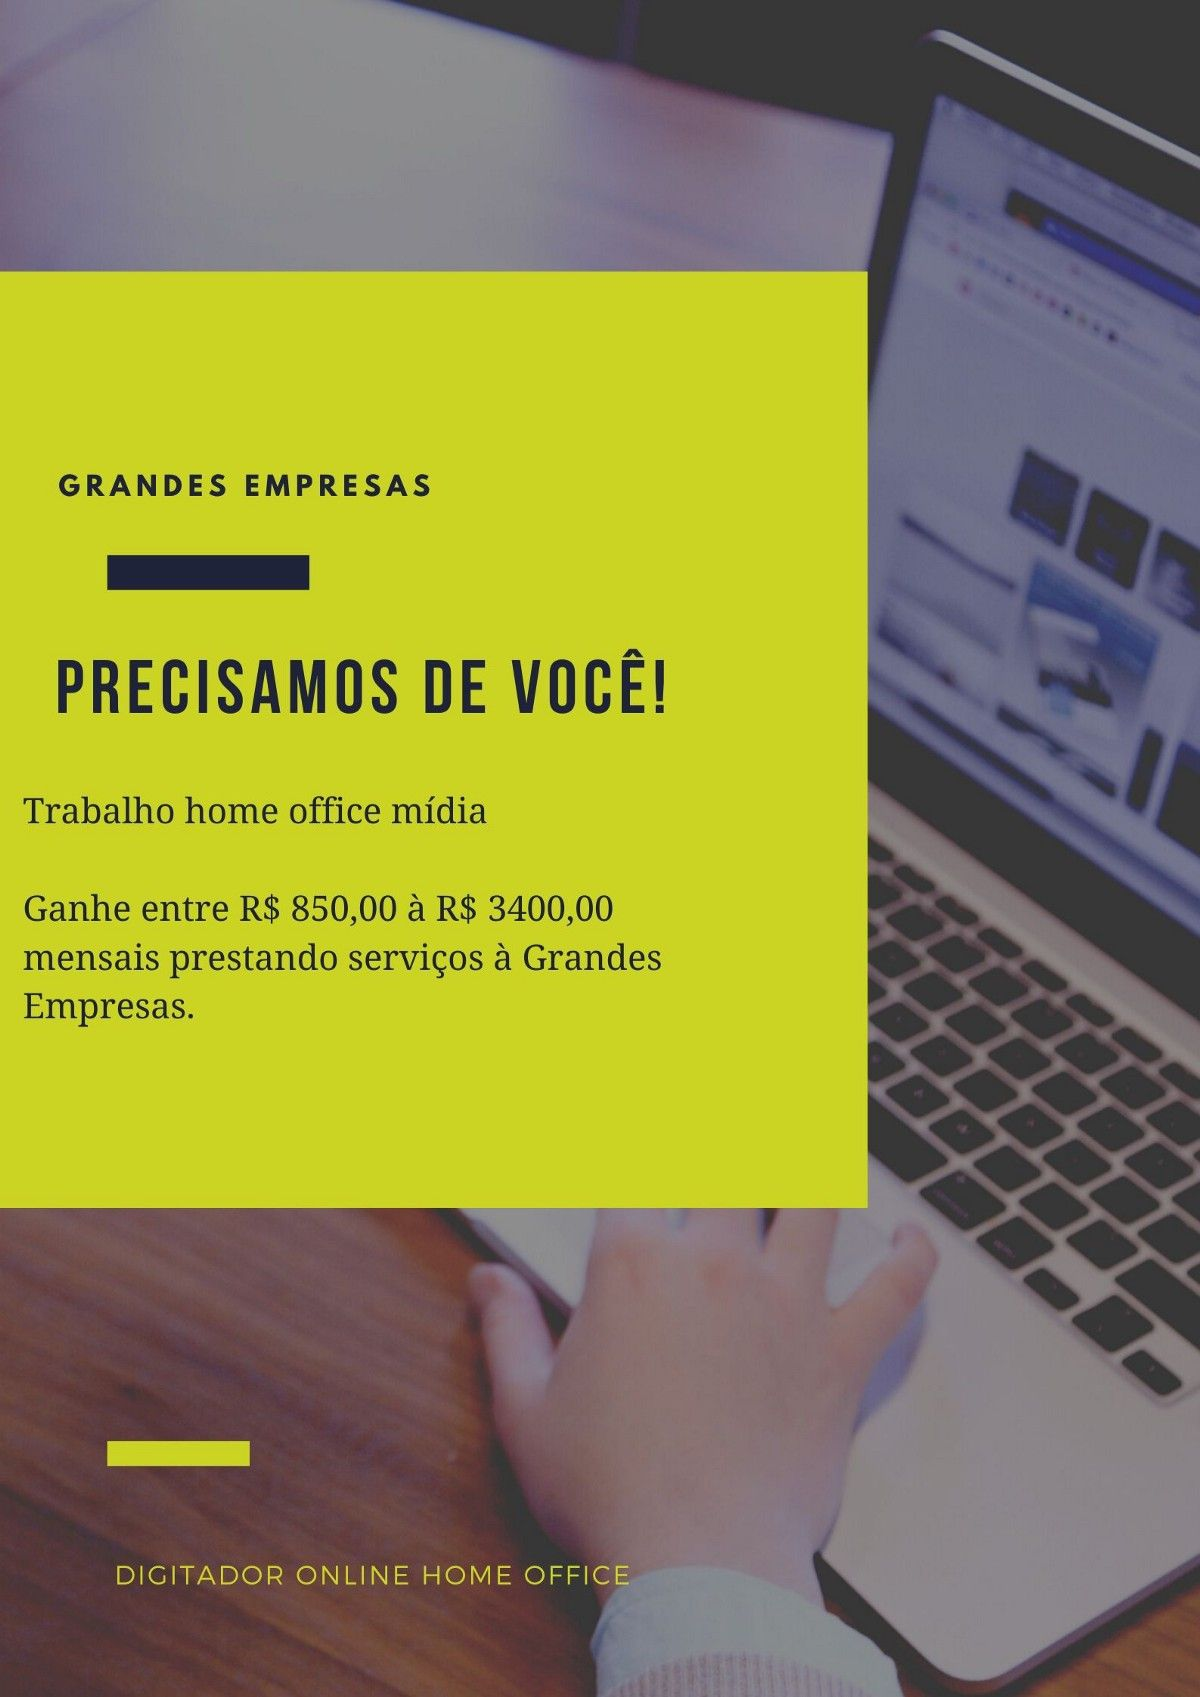 digitador de marketing online é seguro